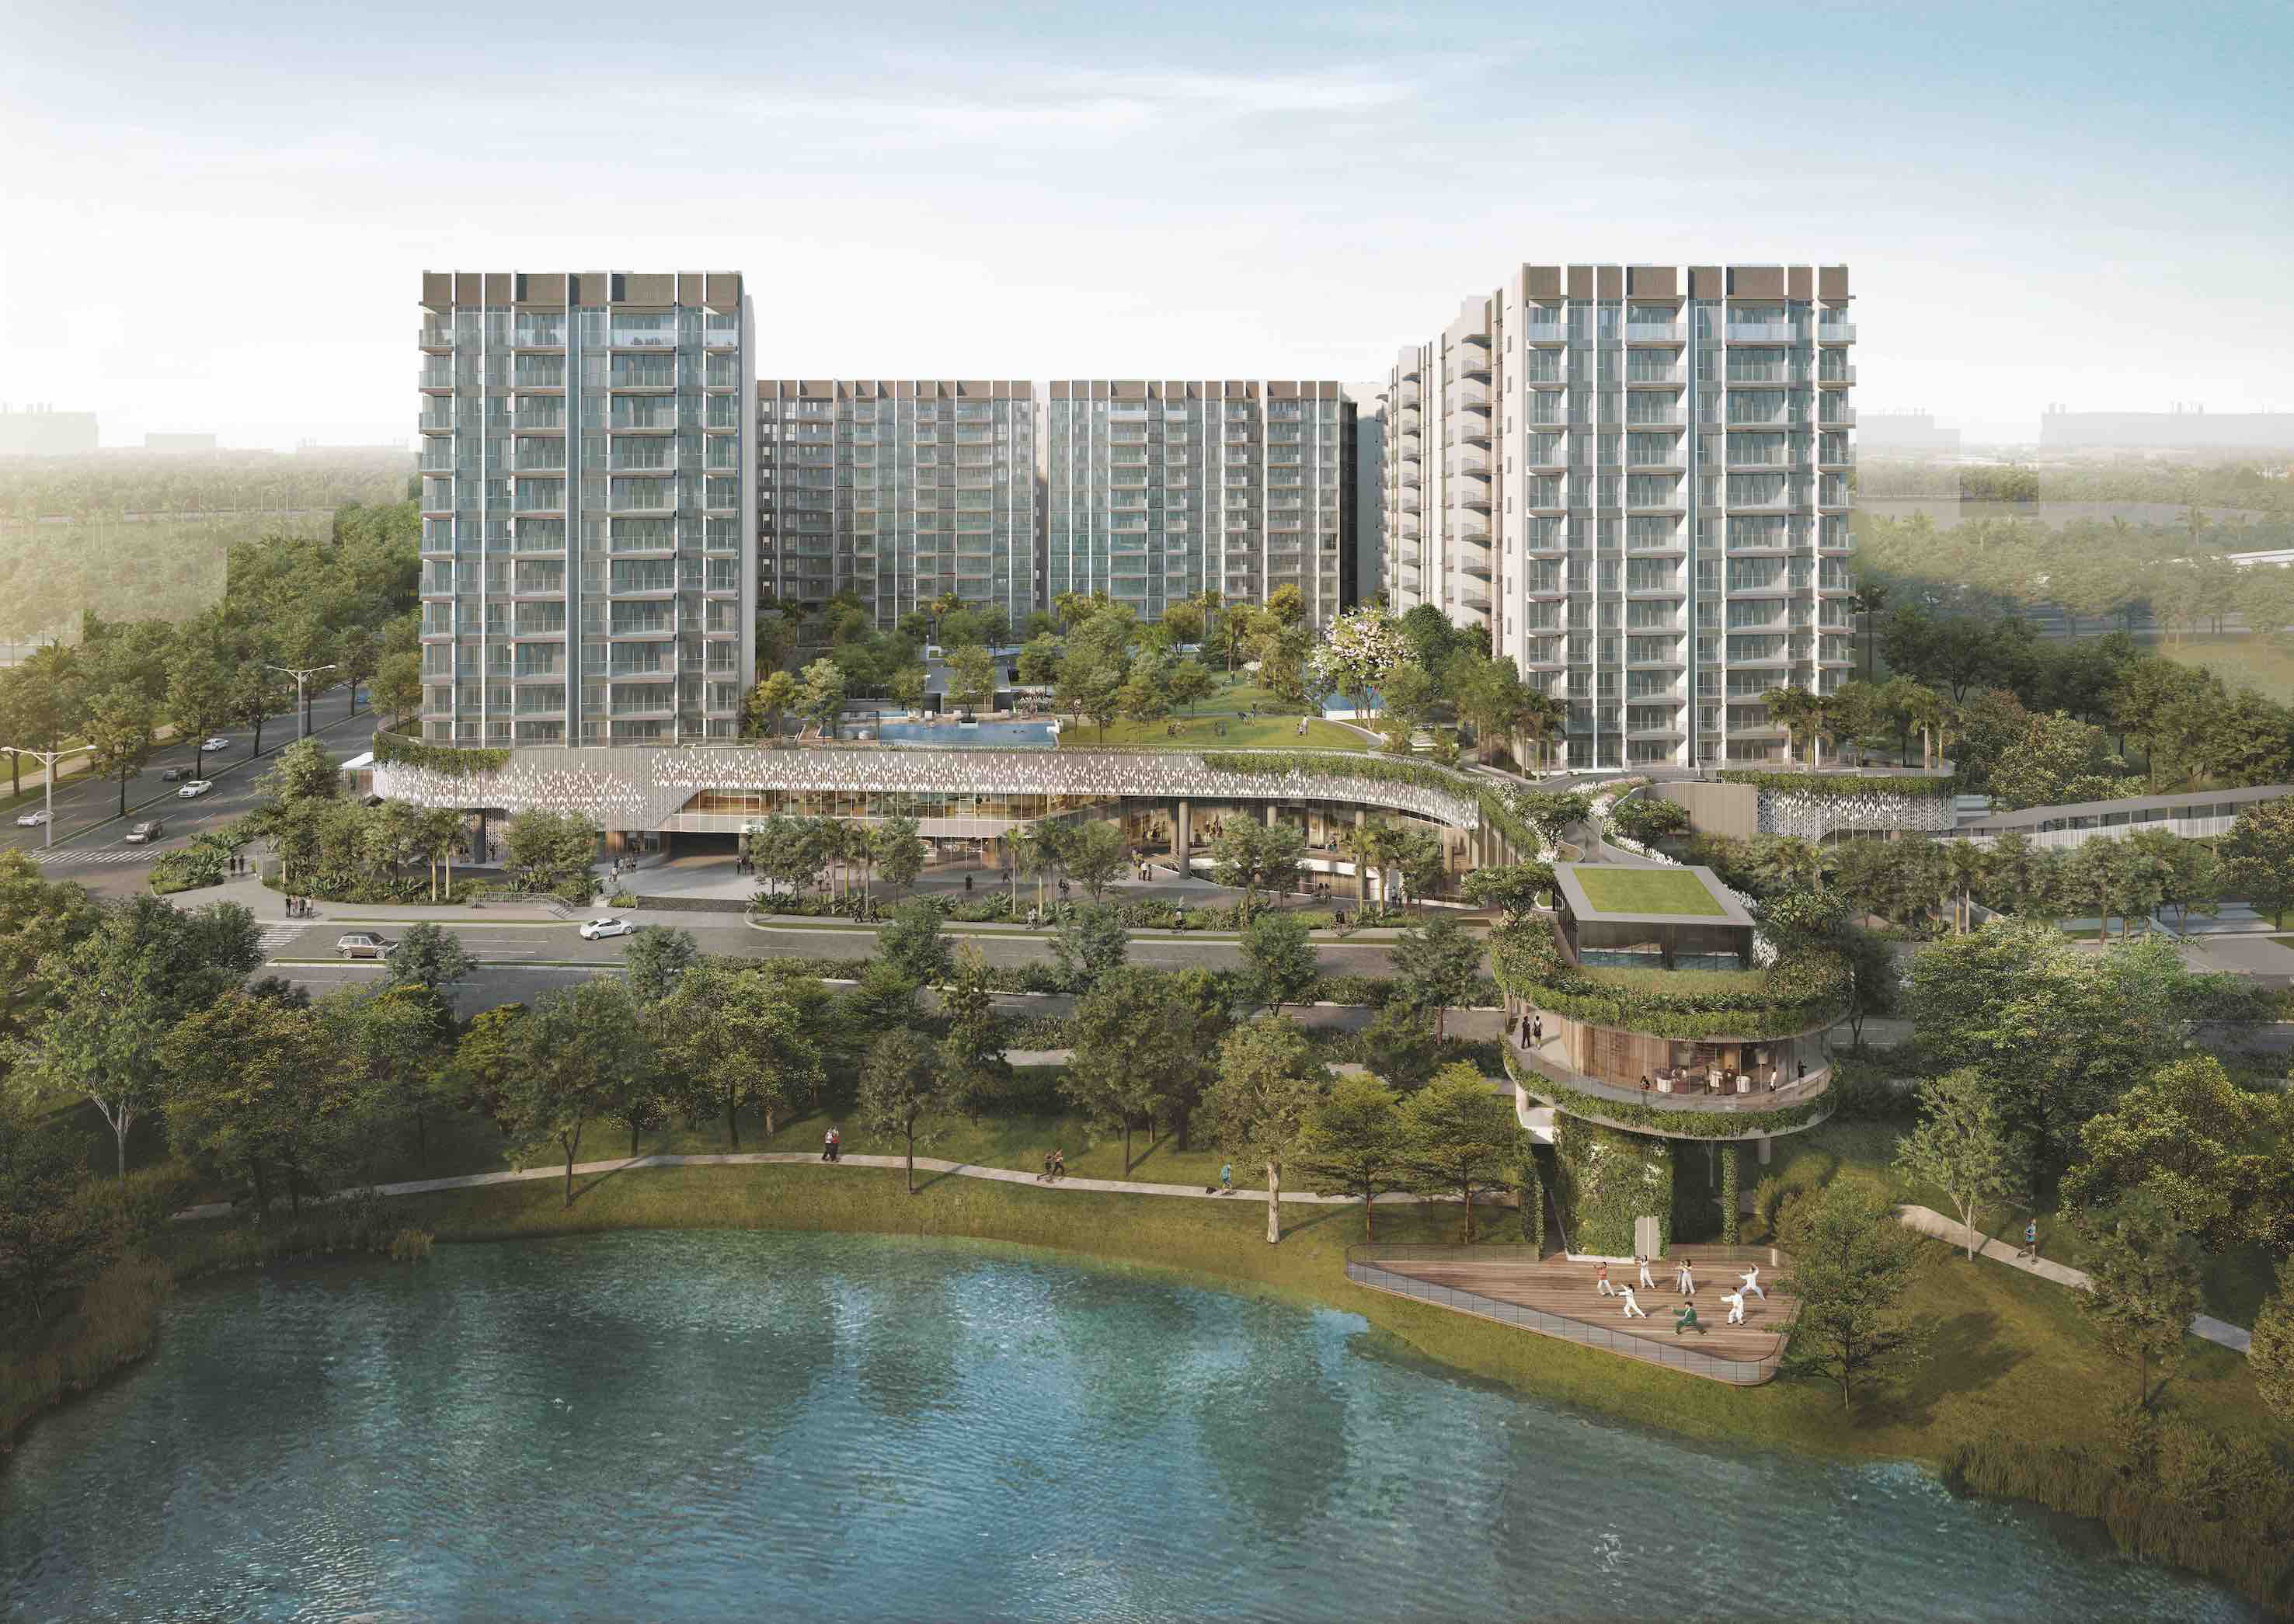 Woodleigh Residences - EDGEPROP SINGAPORE